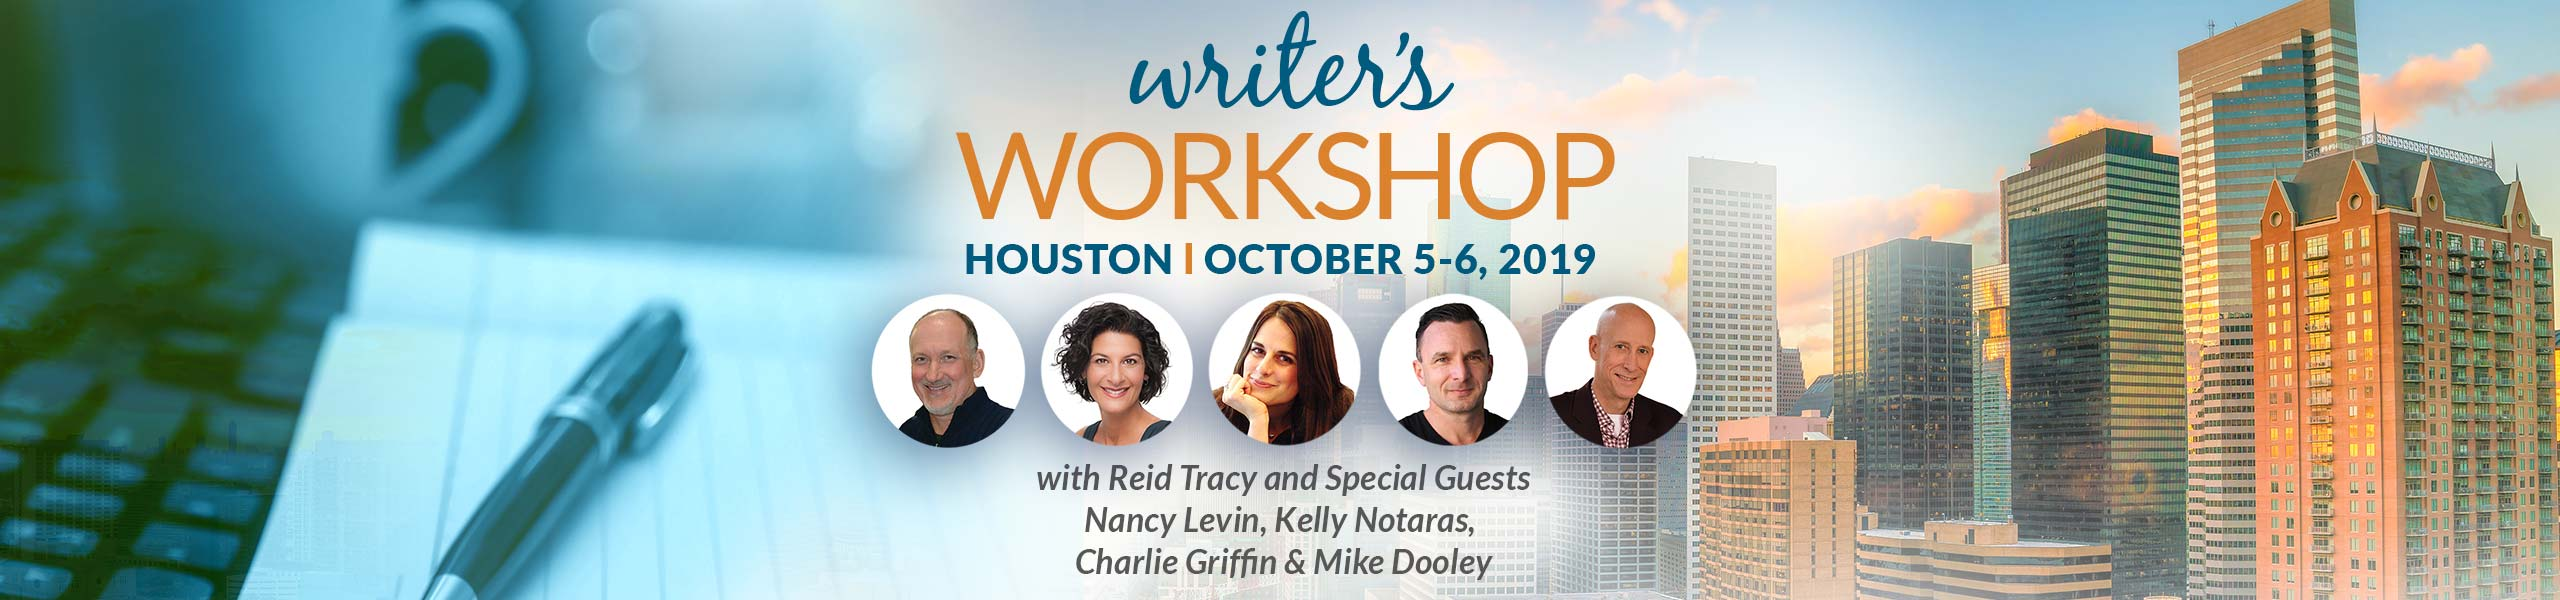 Writer's Workshop - Houston